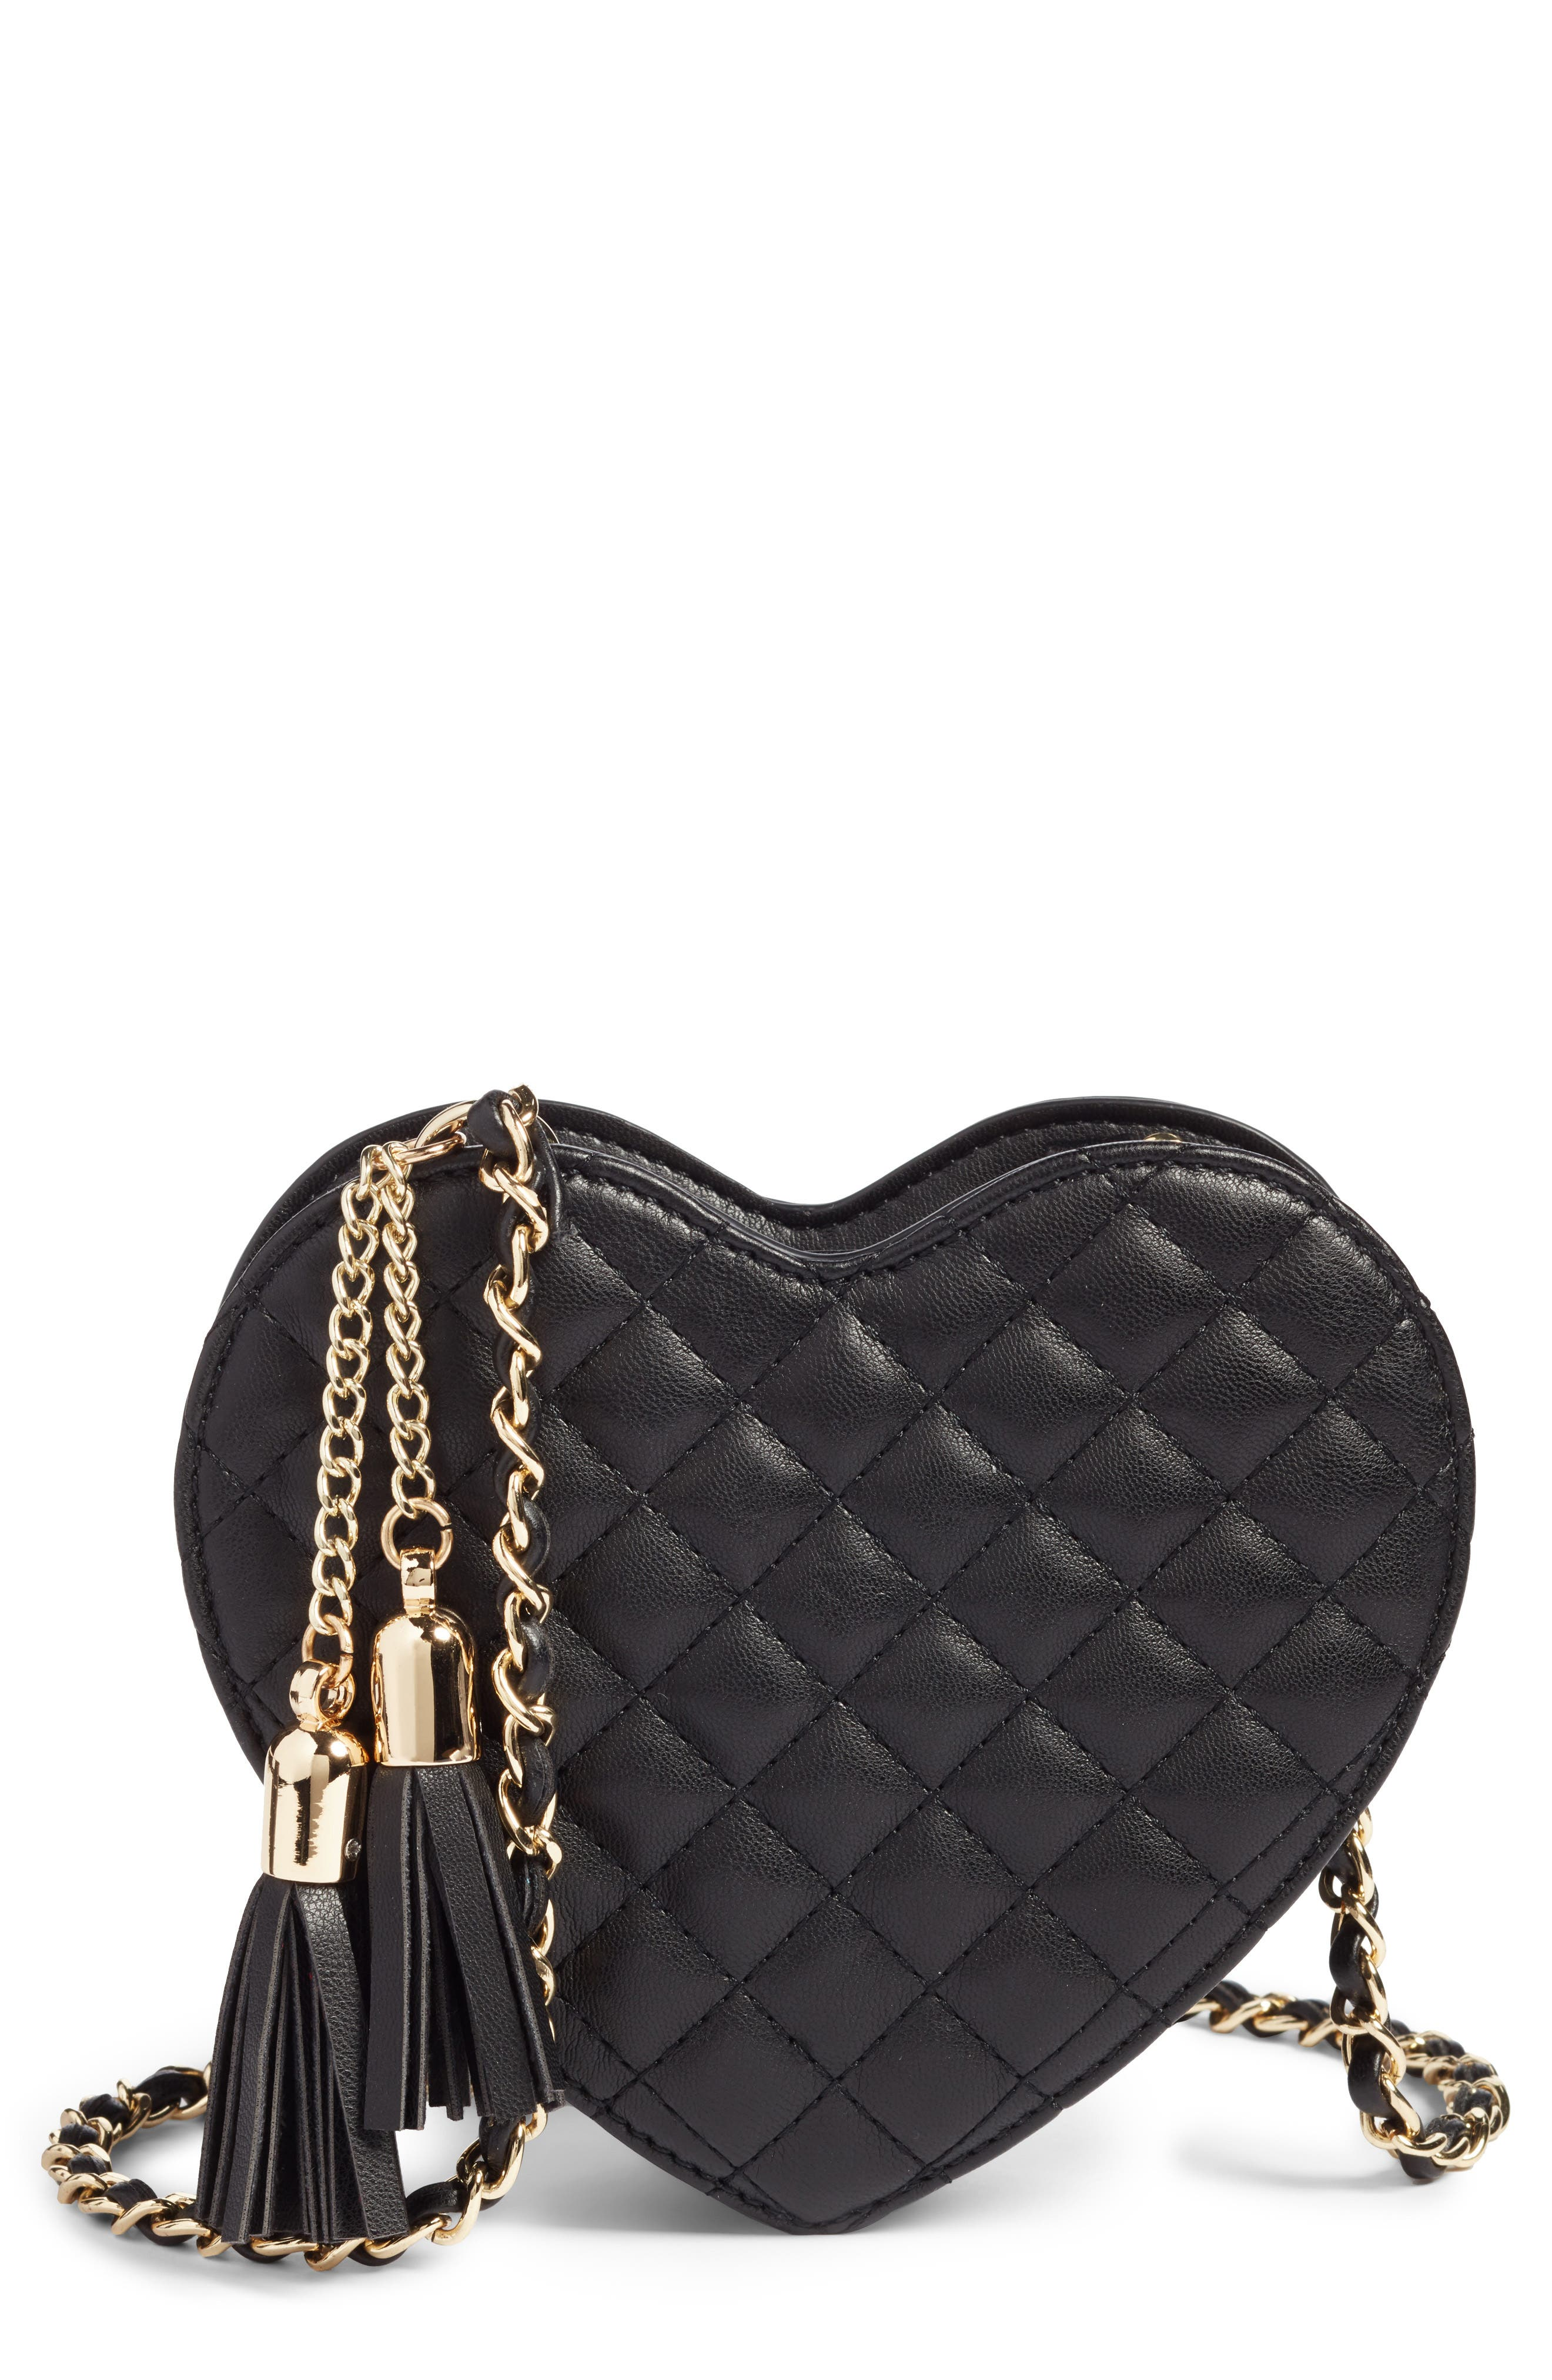 Mali + Lili Quilted Heart Vegan Leather Crossbody Bag,                         Main,                         color, BLACK